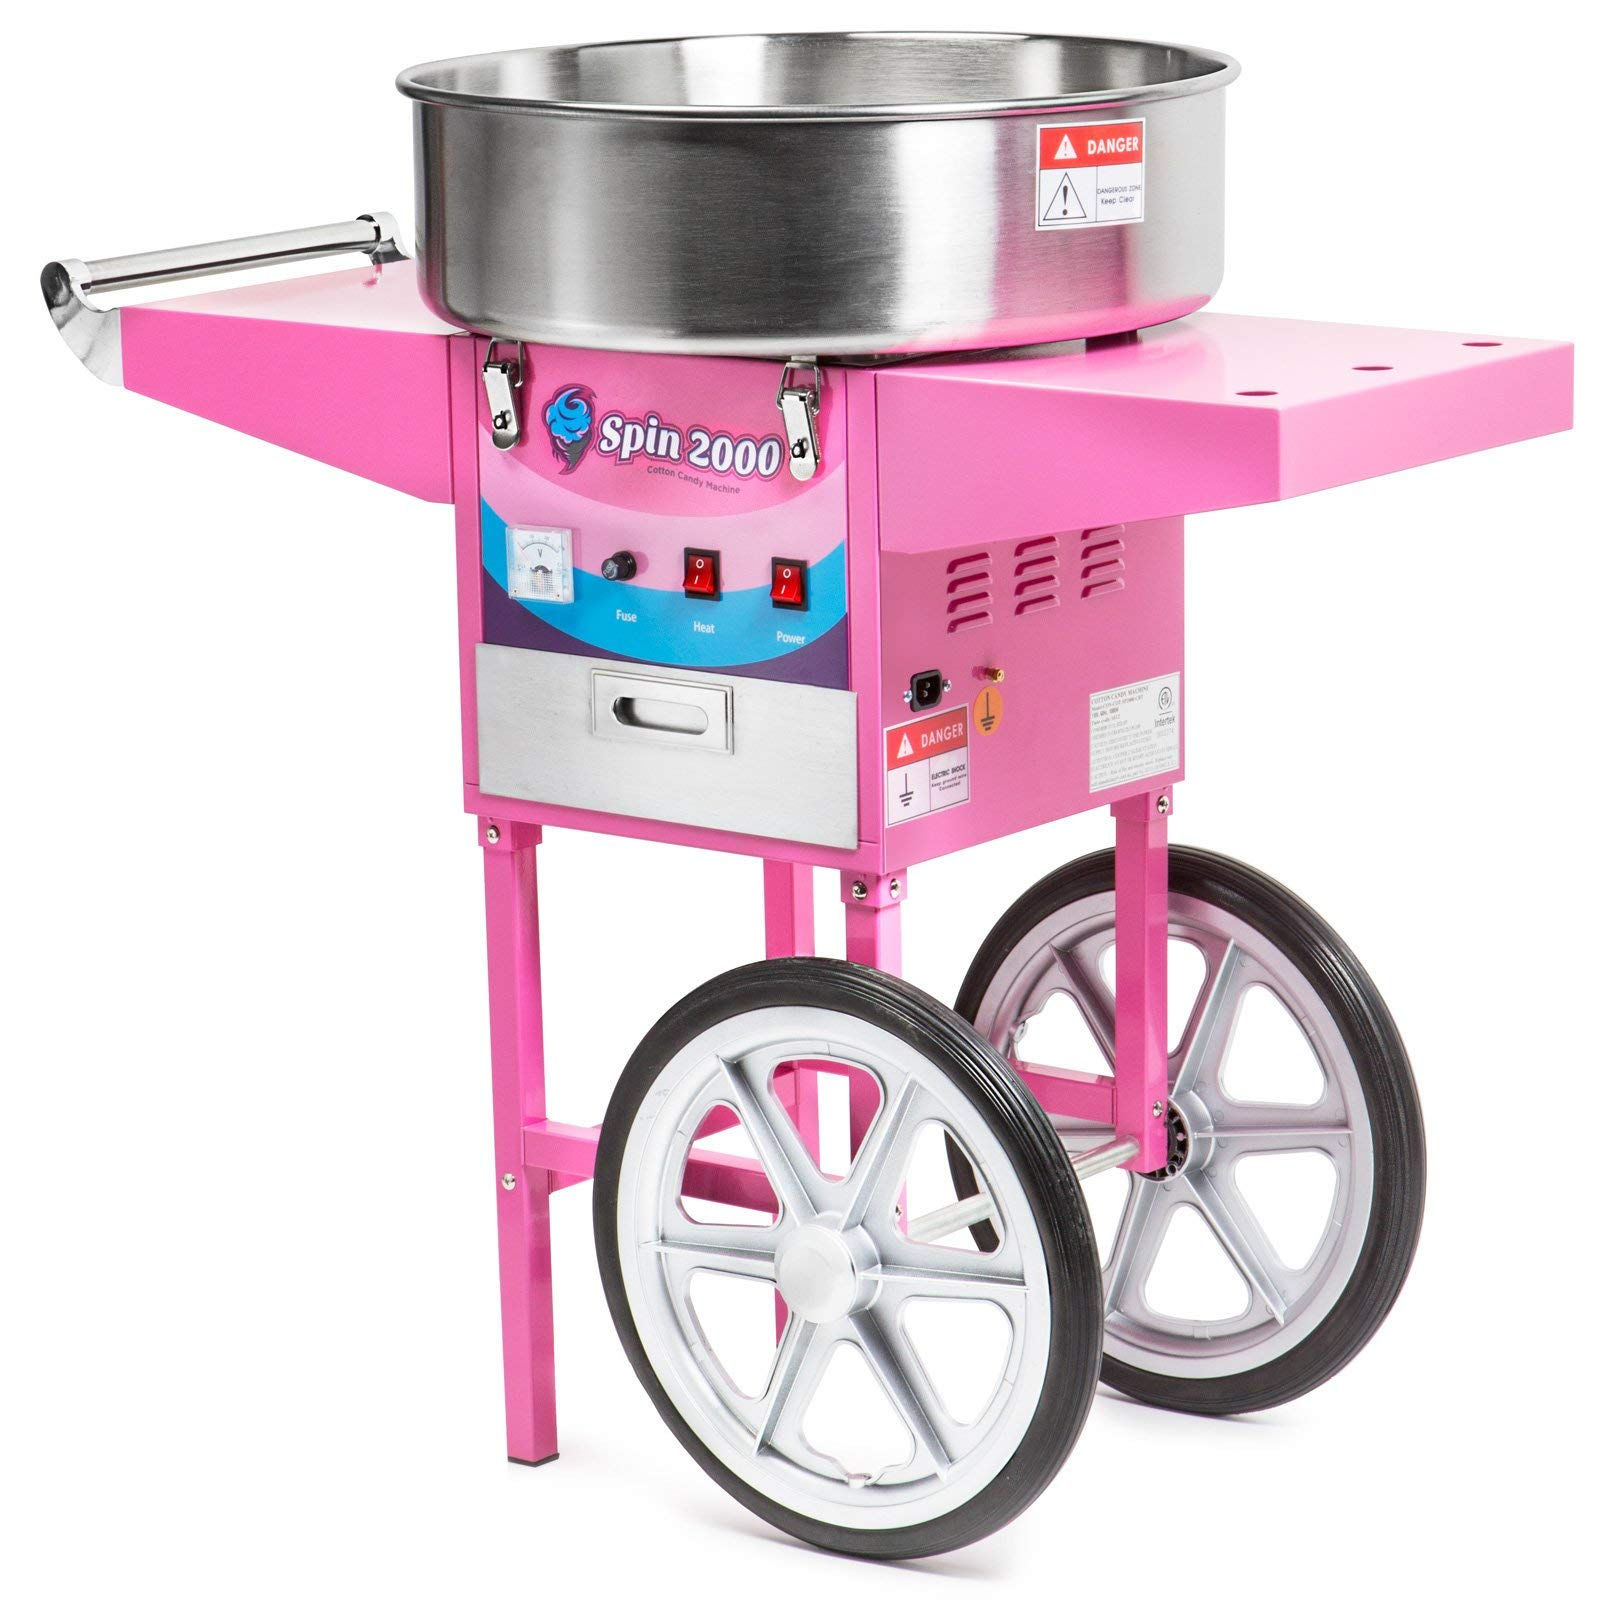 Olde Midway Commercial Quality Cotton Candy Machine Cart and Electric Candy Floss Maker - SPIN 2000 (Renewed) by Olde Midway (Image #2)